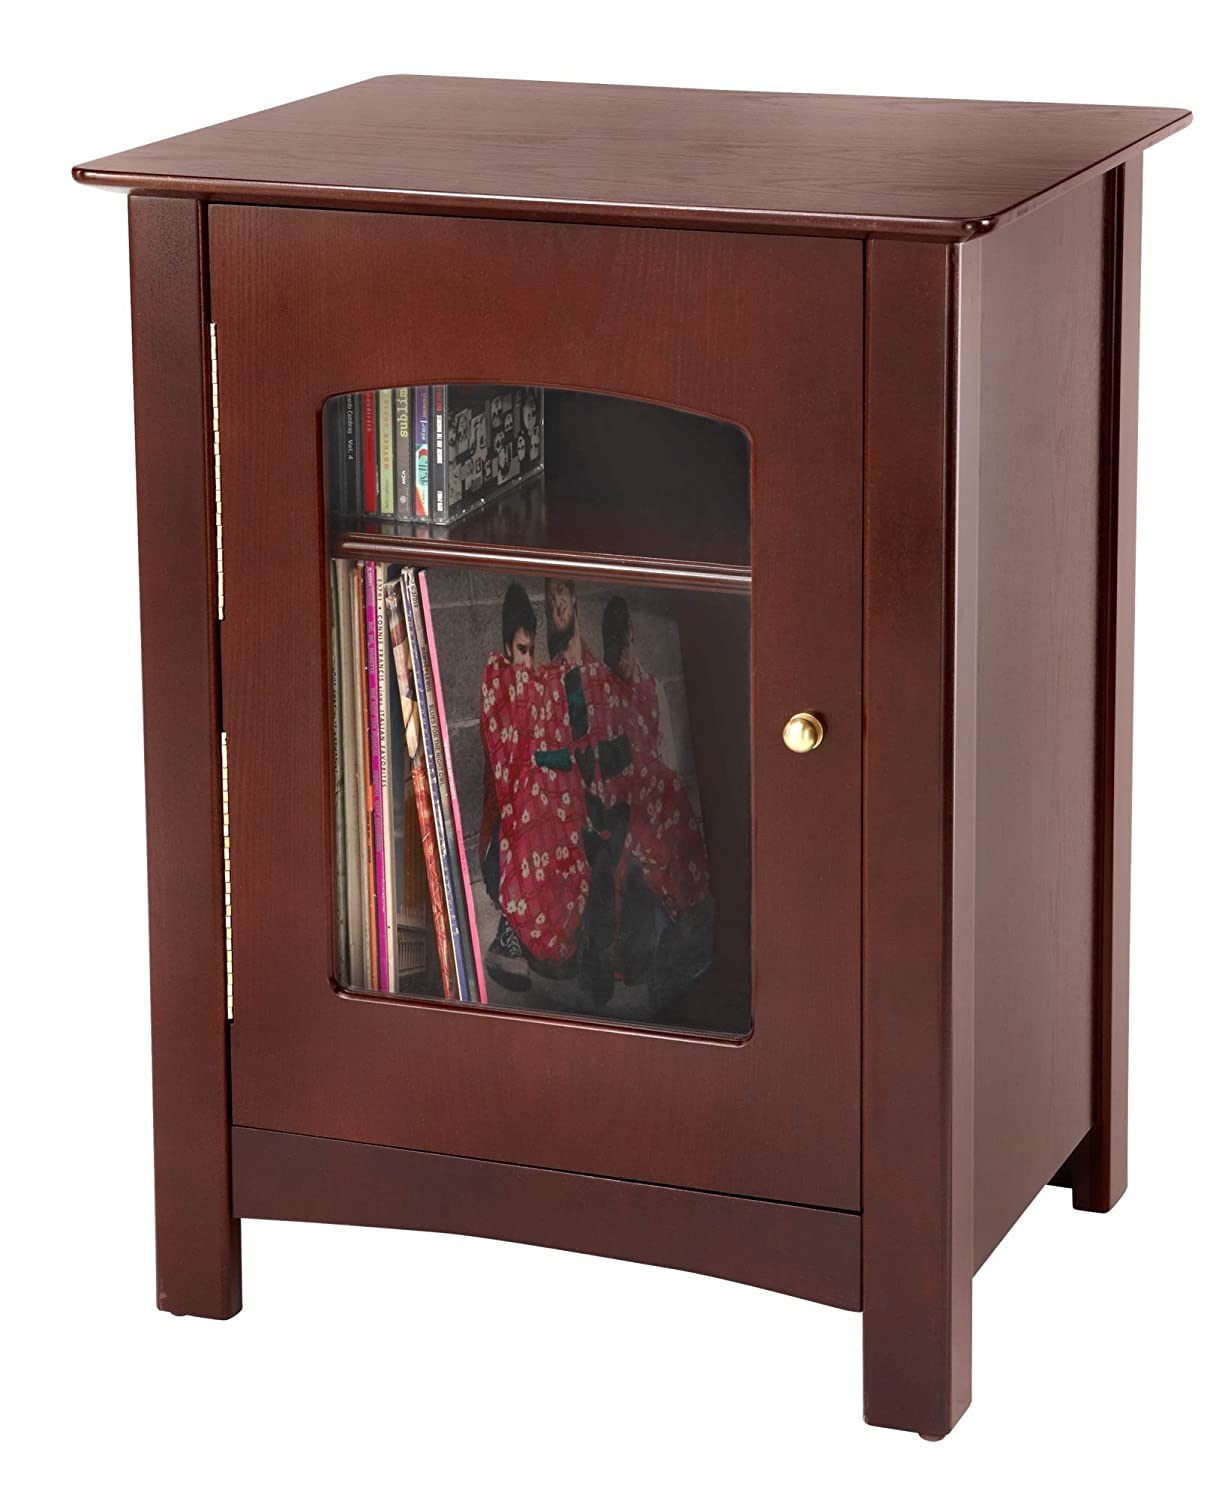 component home vanity black white with leslie dame designs cabinets doors free decor bathroom atlantic blu glass floating or tv cabinet a media ray dvd drawers storage console